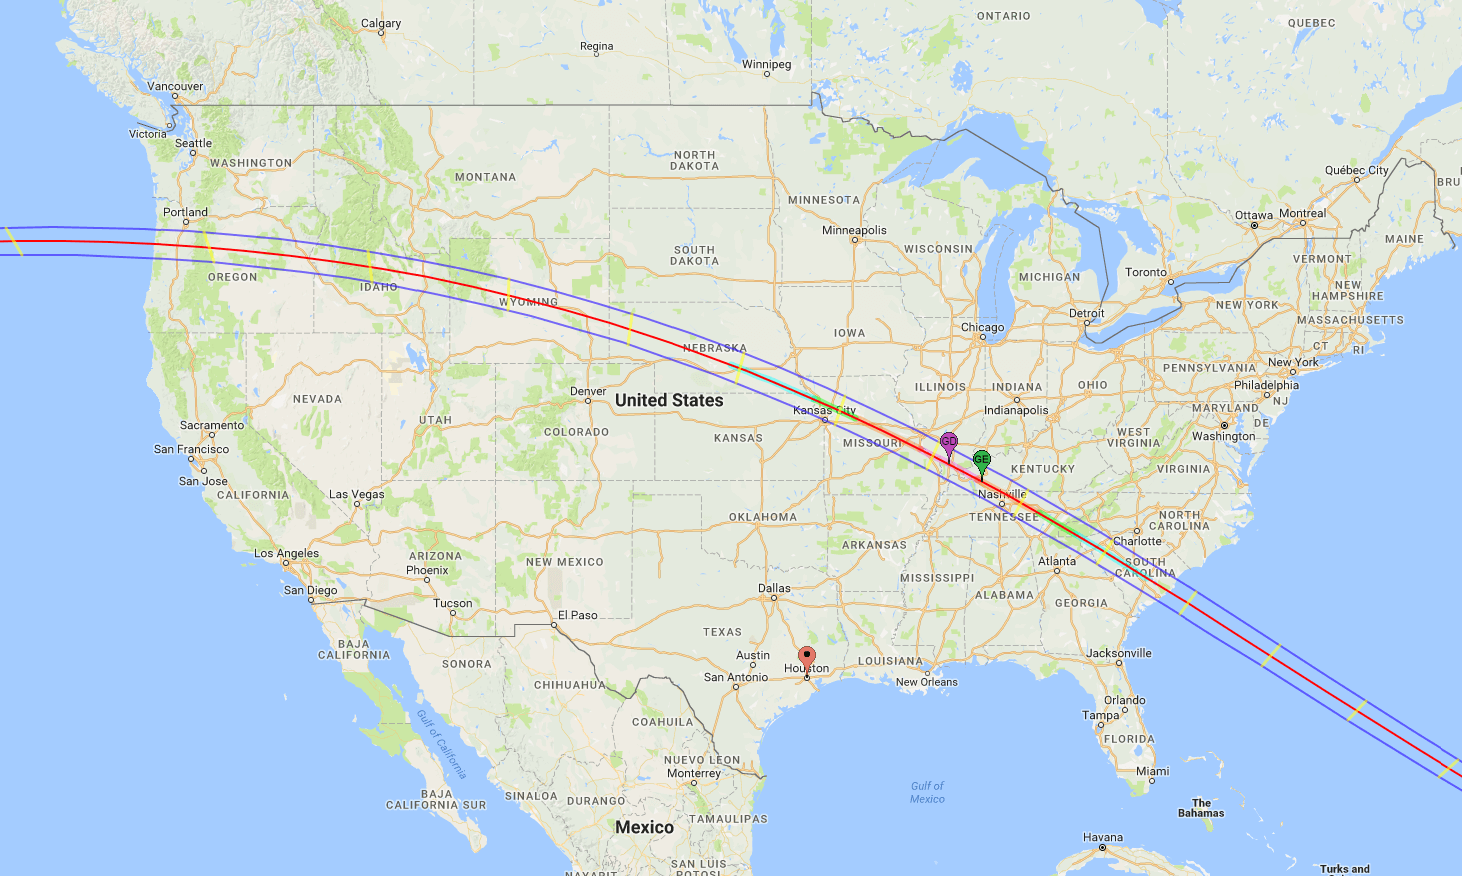 The projected path of the total solar eclipse.